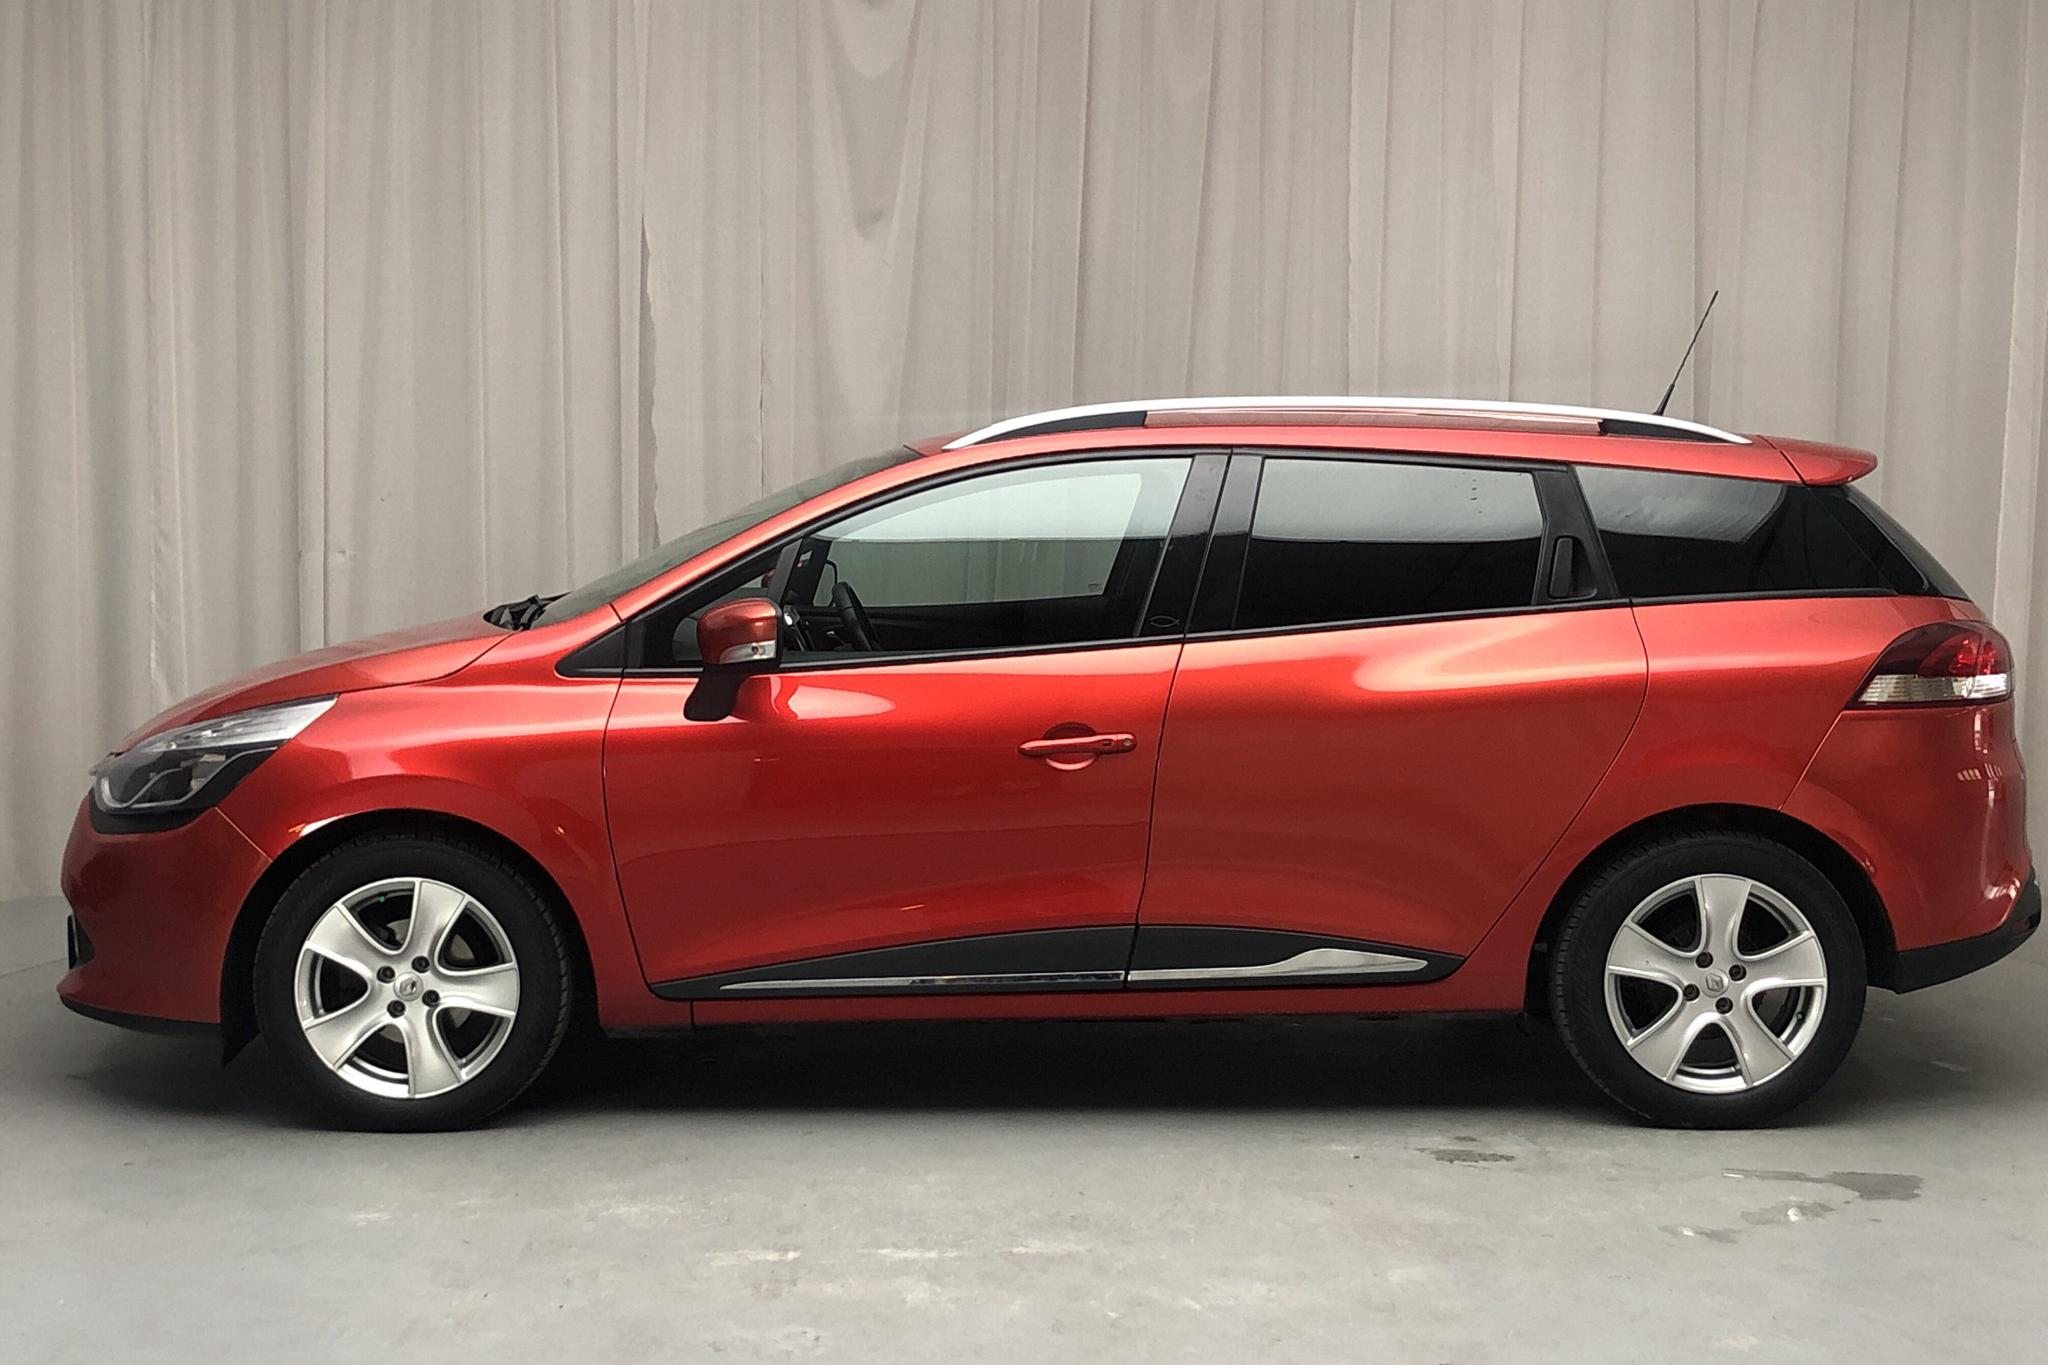 Renault Clio IV 0.9 TCe 90 Sports Tourer (90hk) - 89 850 km - Manual - red - 2014